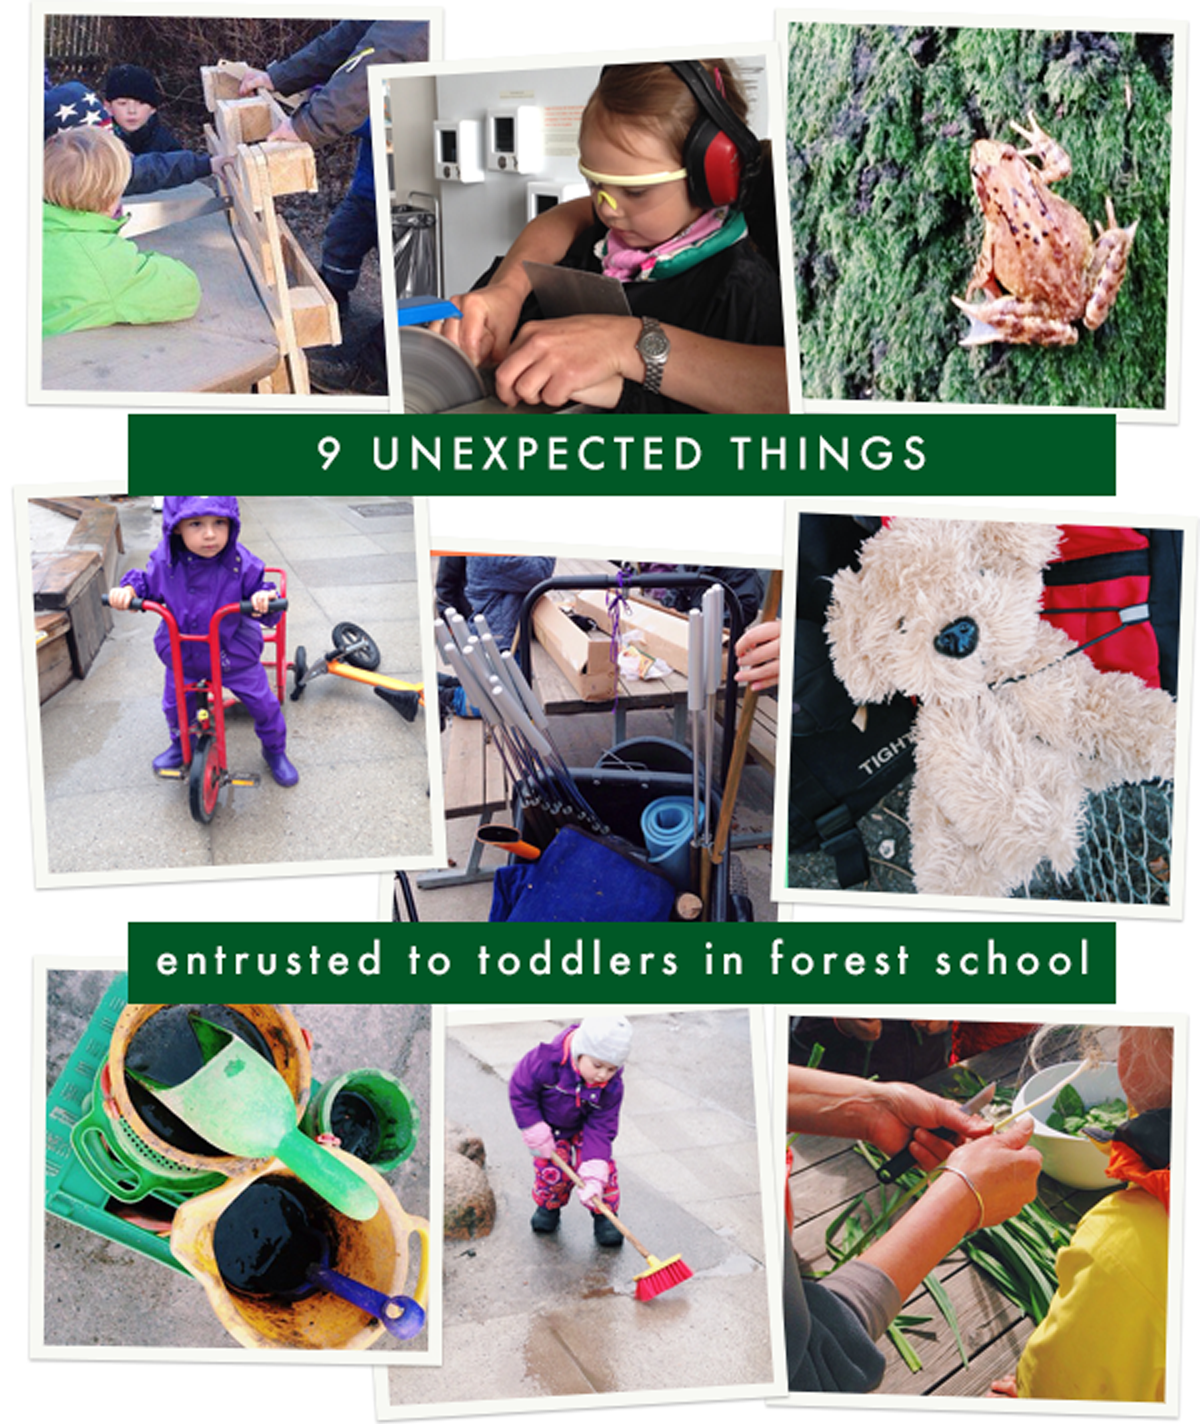 Unexpected ways to play for toddlers in forest schools in Denmark.